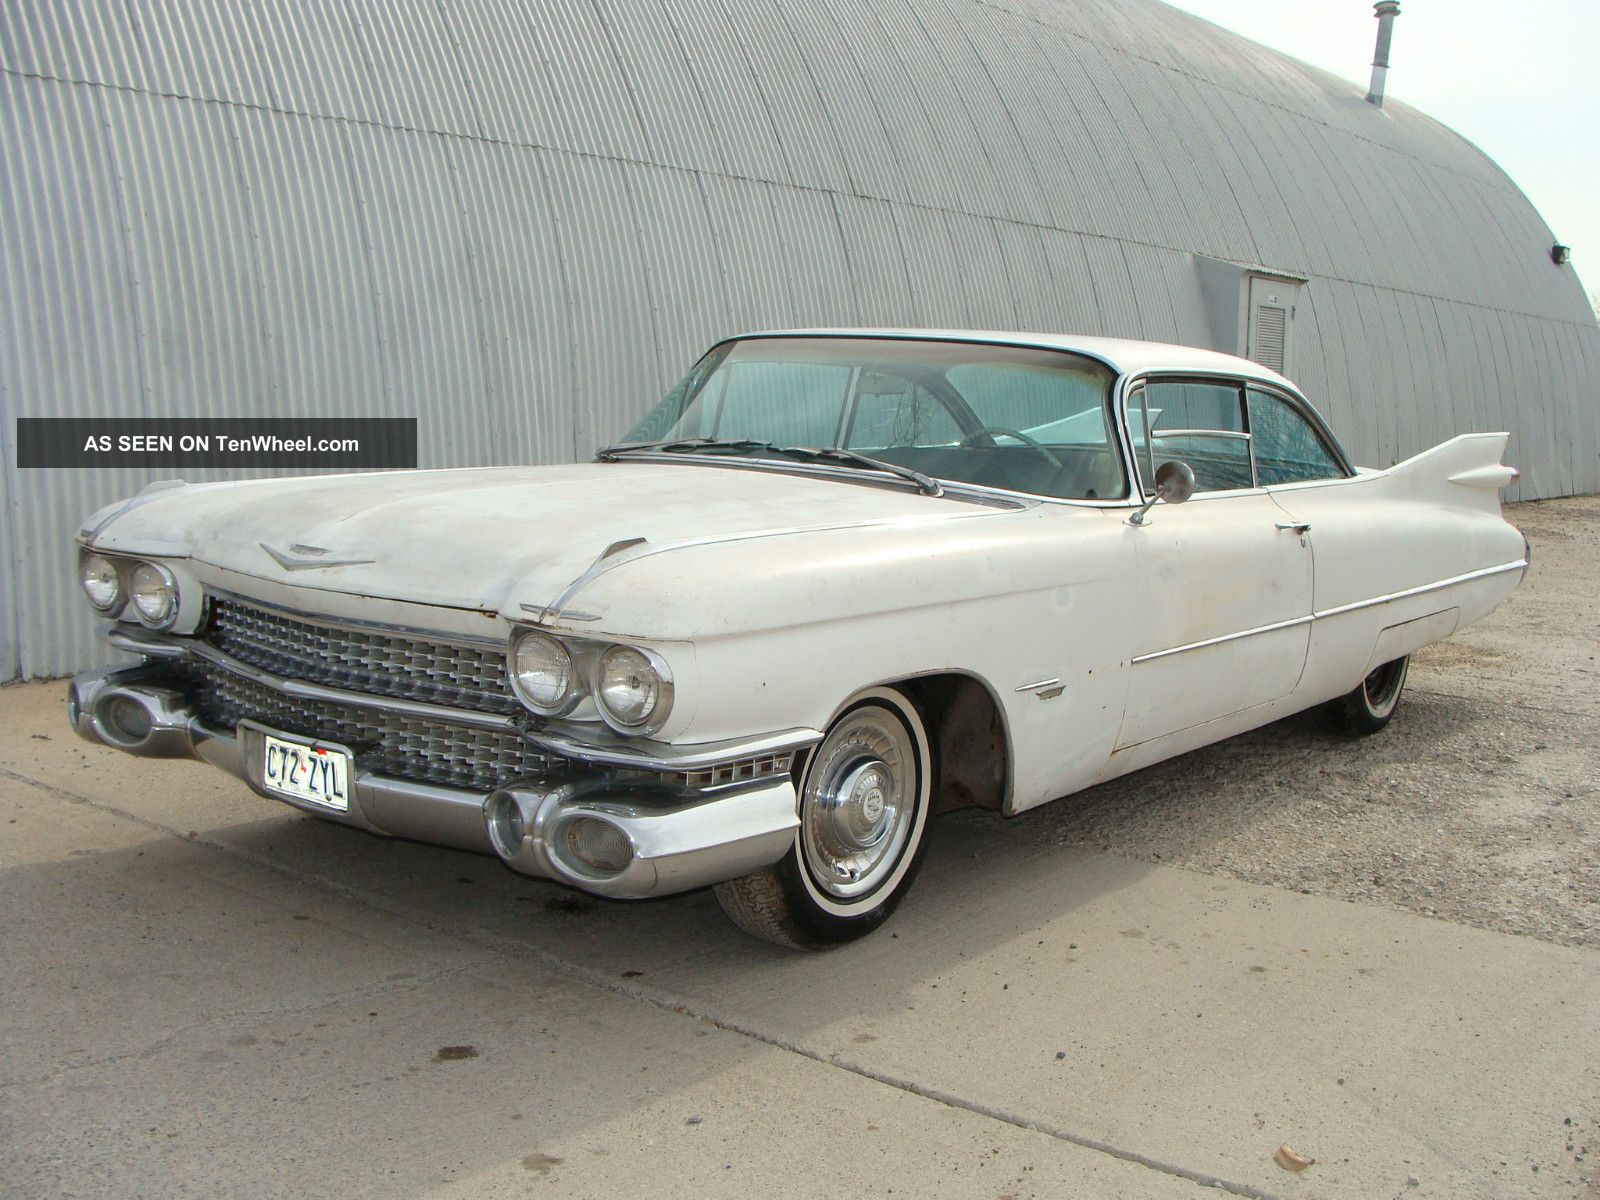 1959 Cadillac Series 62 Coupe Solid Mexico Project In